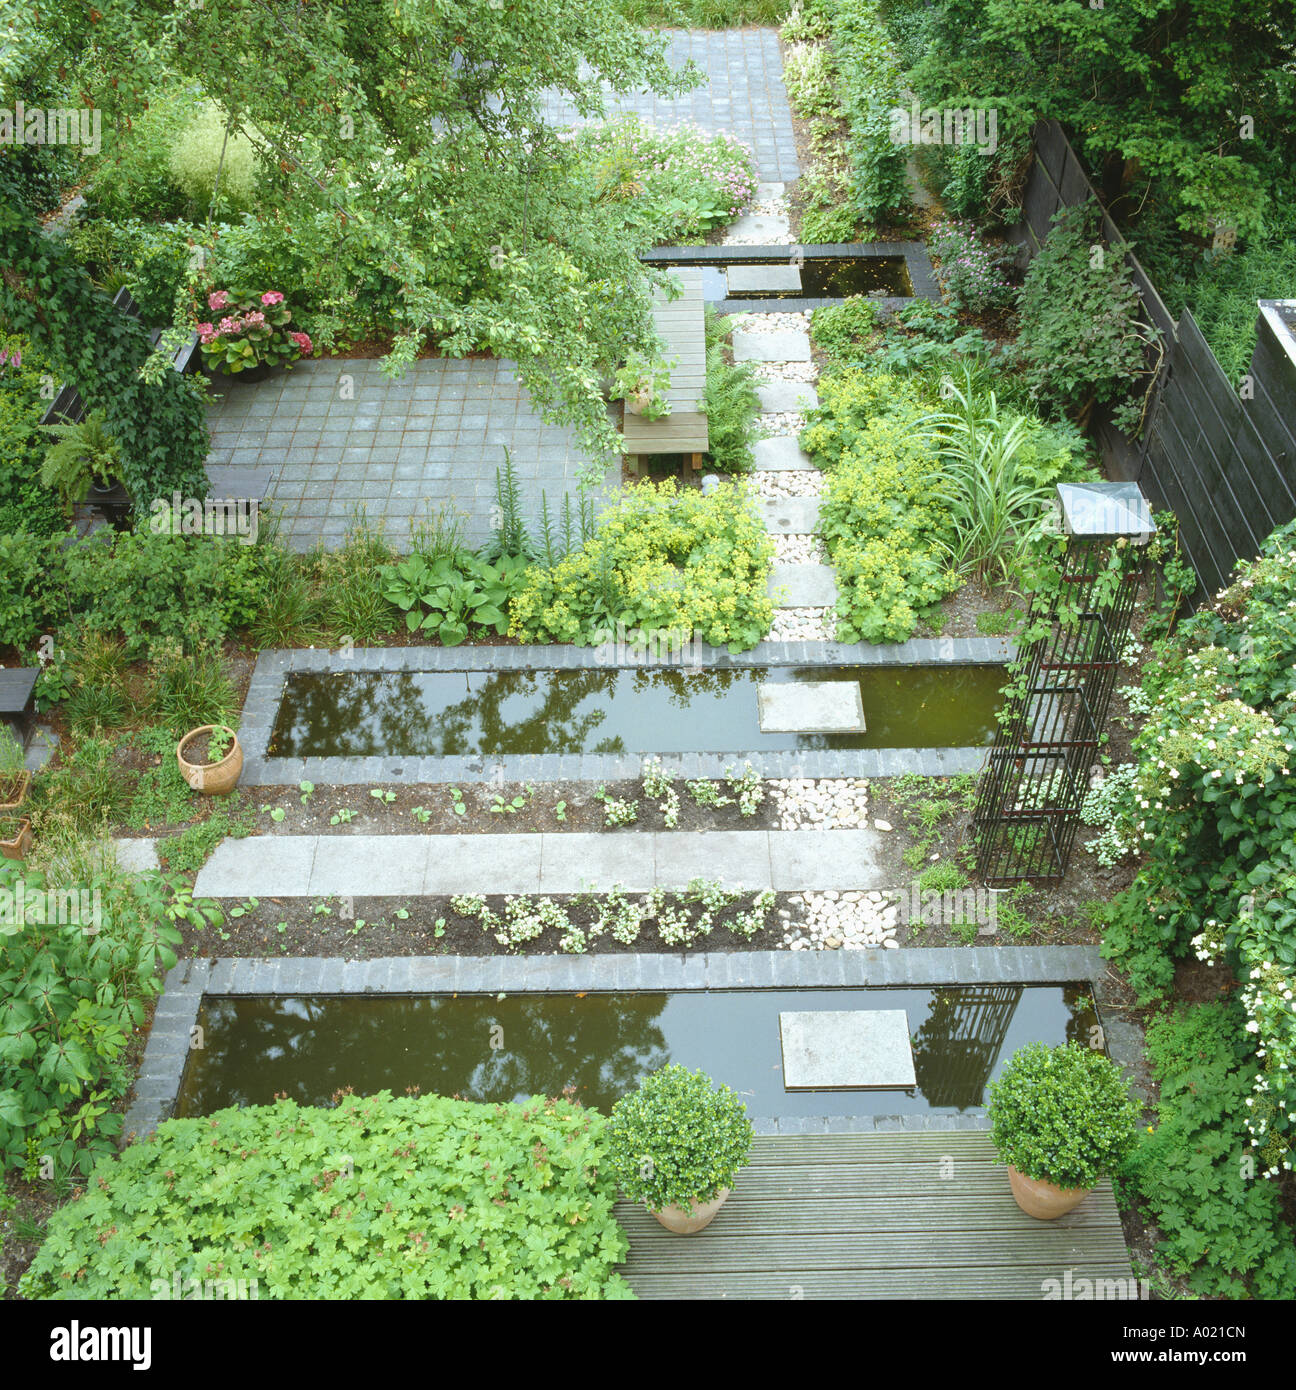 Beau Aerial View Of Paved Garden With Rectangular Ponds And Small ...